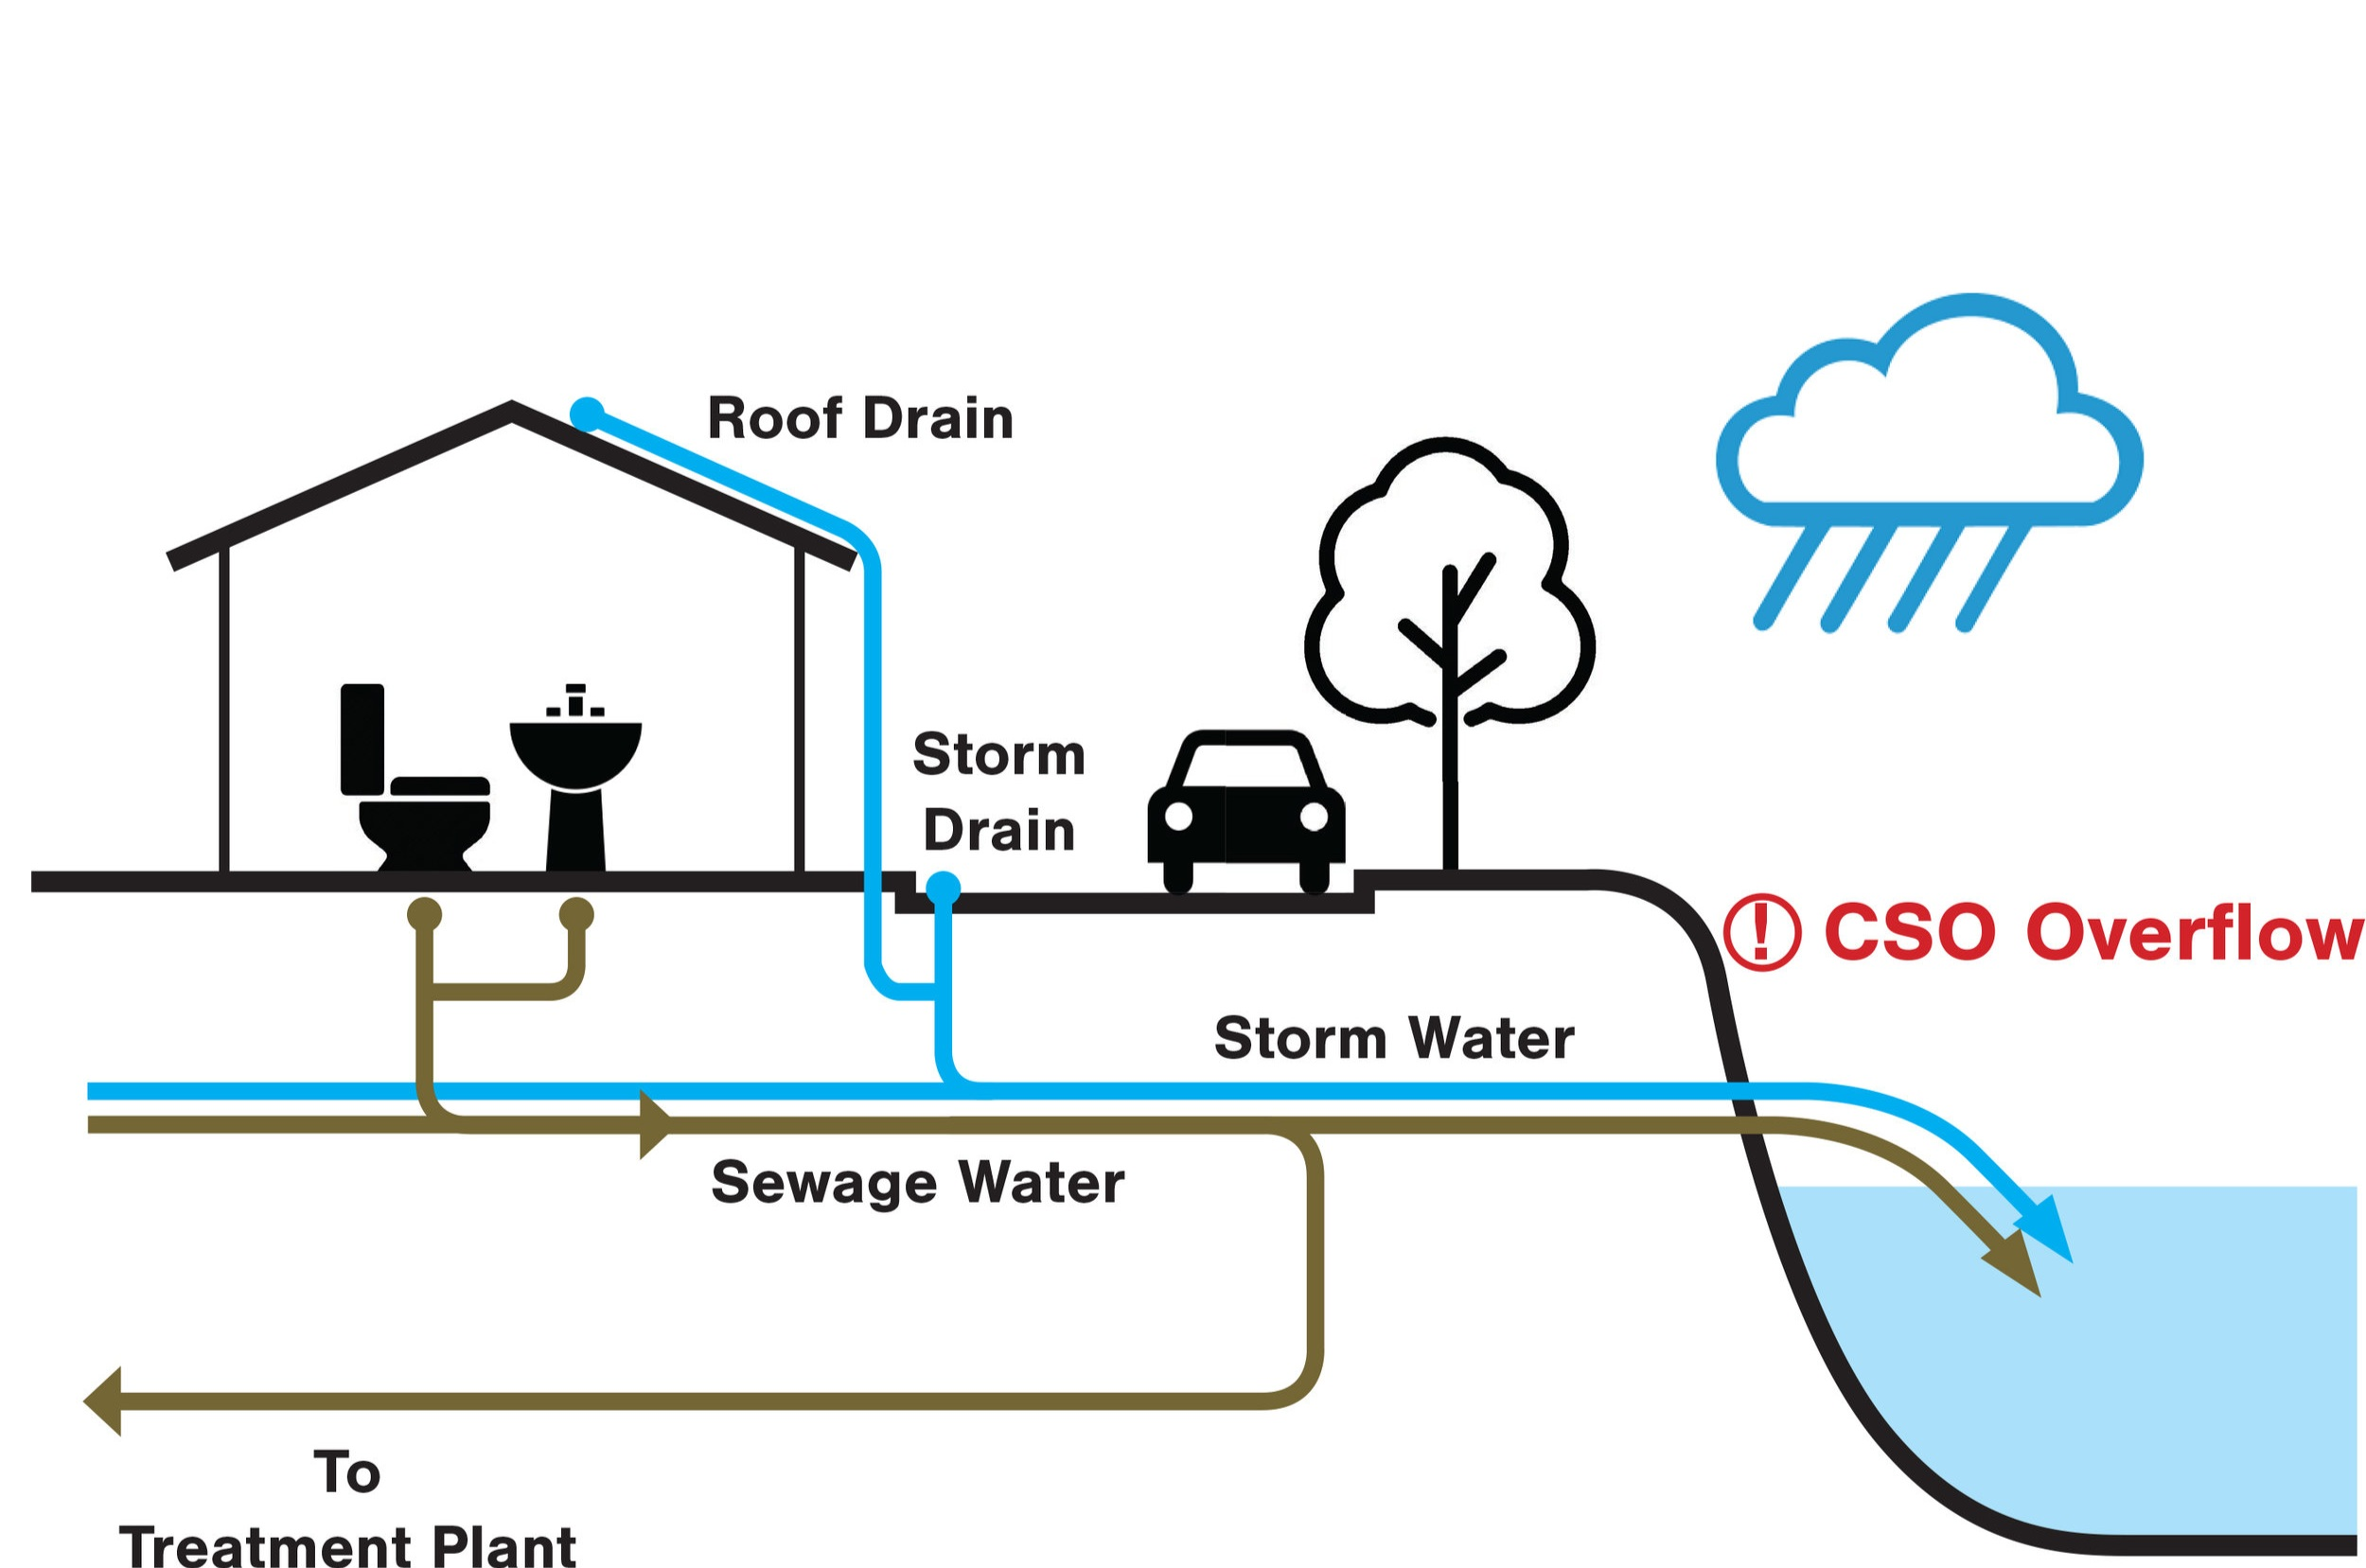 COMBINED SEWAGE OVERFLOW DURING A HEAVY RAIN EVENT